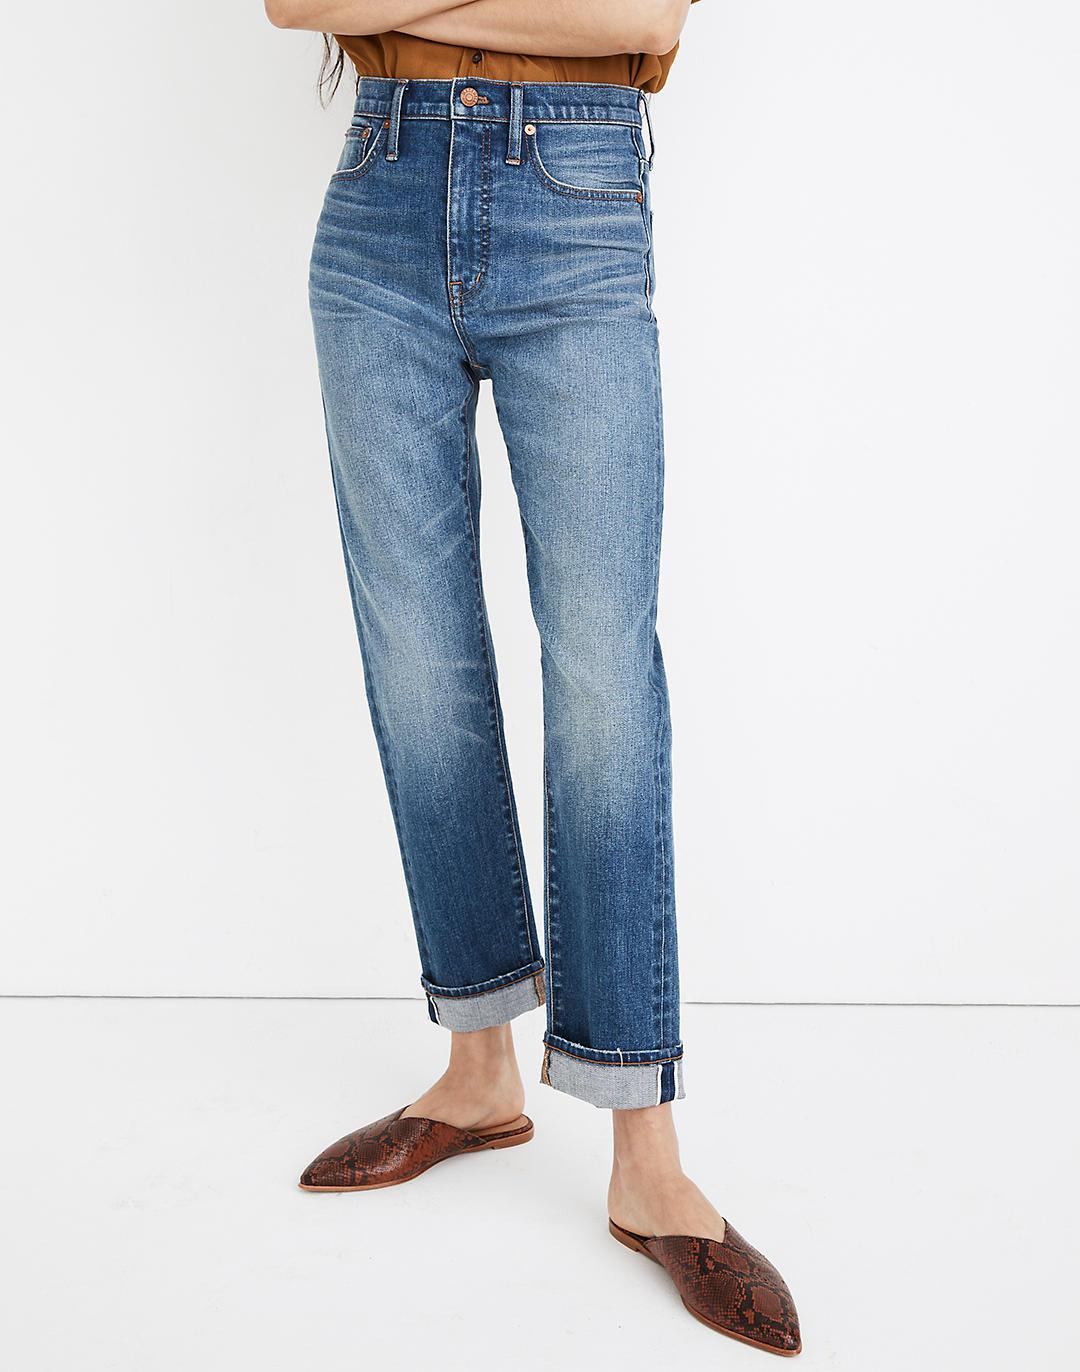 Tall Classic Straight Jeans in Ives Wash: Selvedge Edition 3